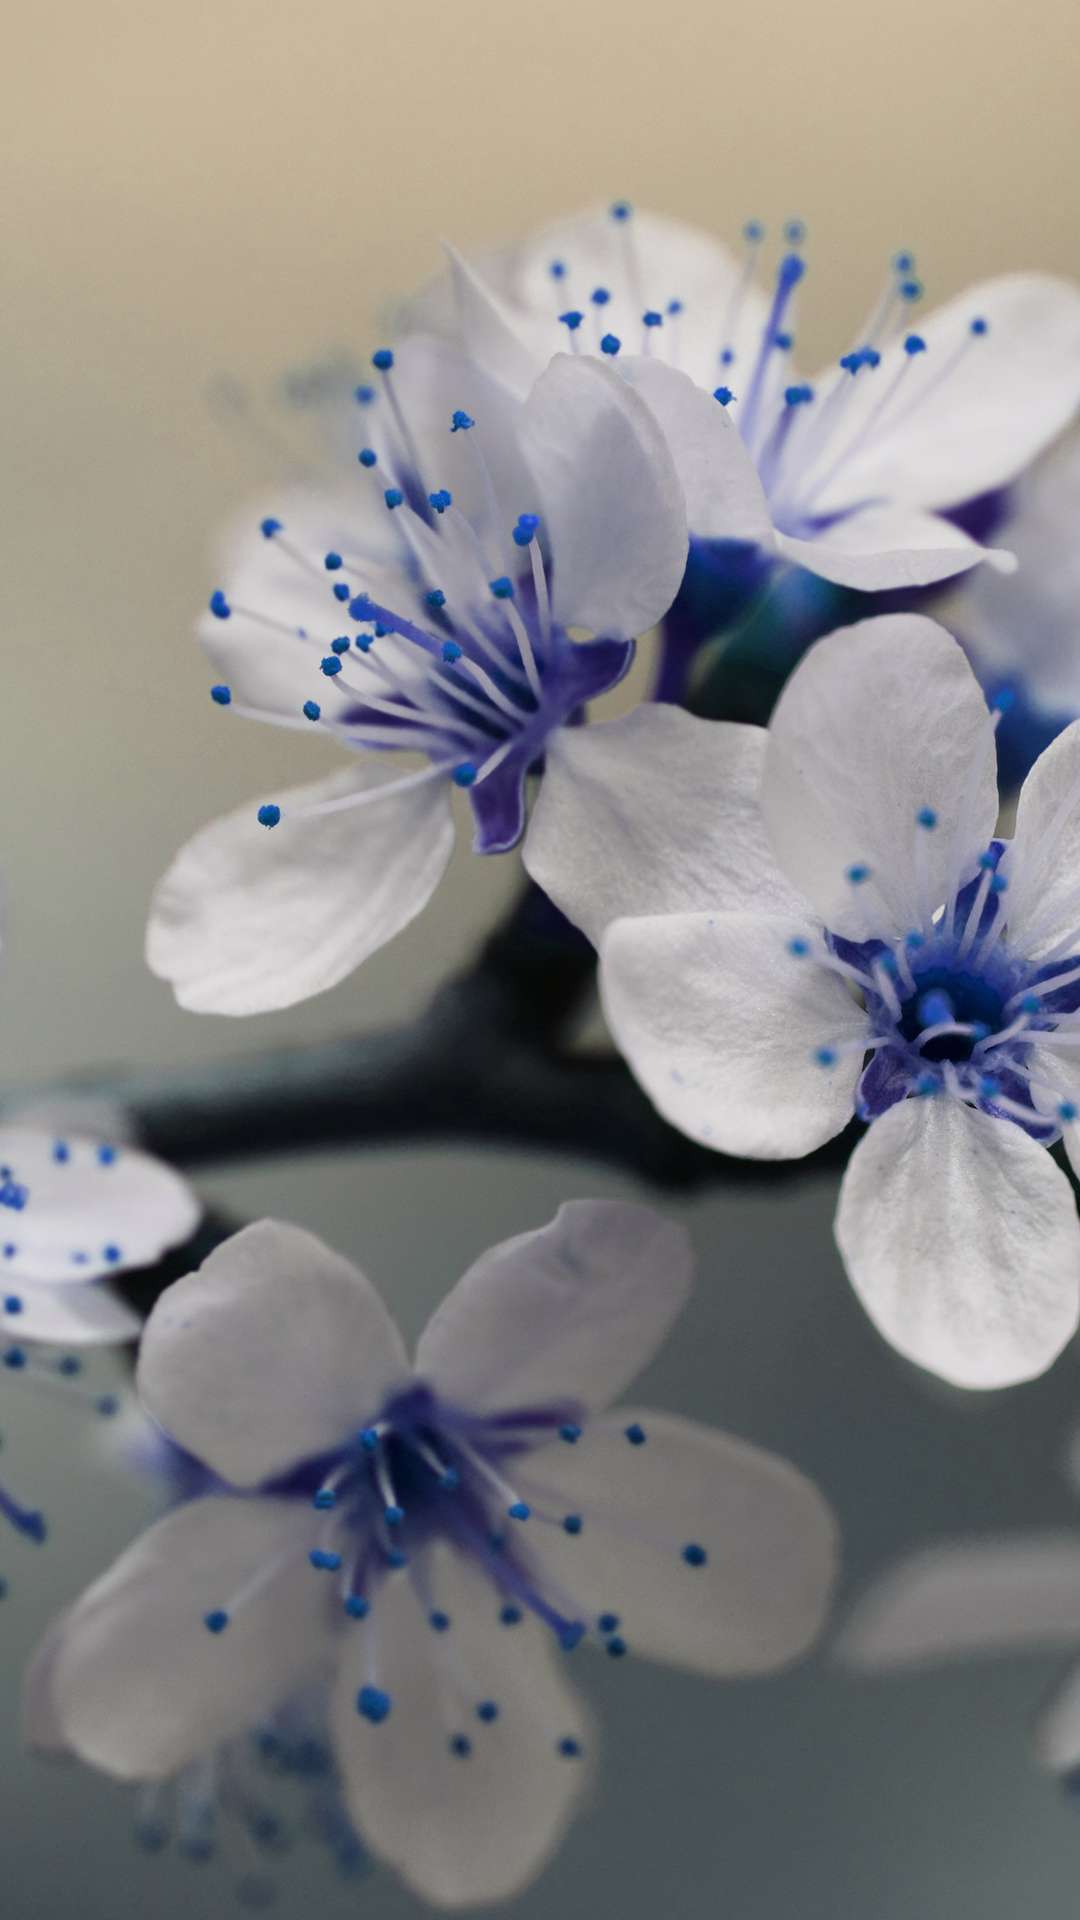 Download our hd beautiful blue flowers wallpaper for - Hd rose wallpaper for android mobile ...